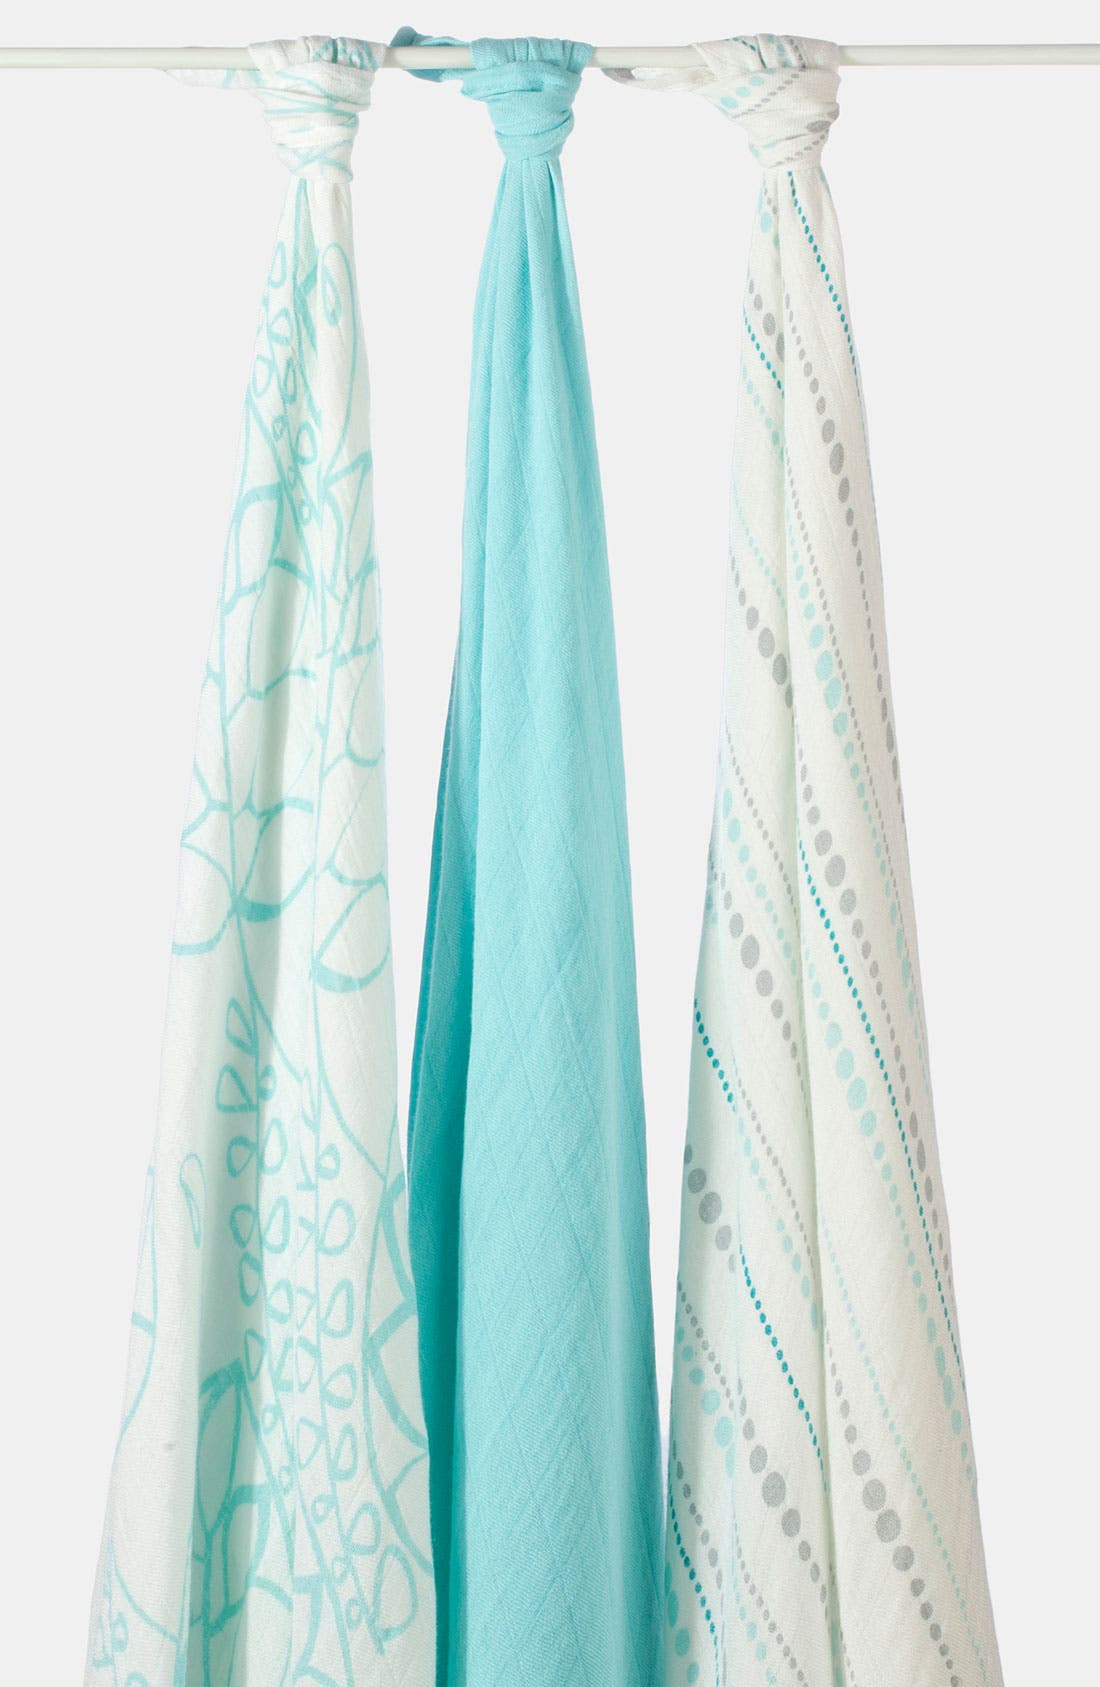 Main Image - aden + anais Swaddling Cloths, 3-Pack